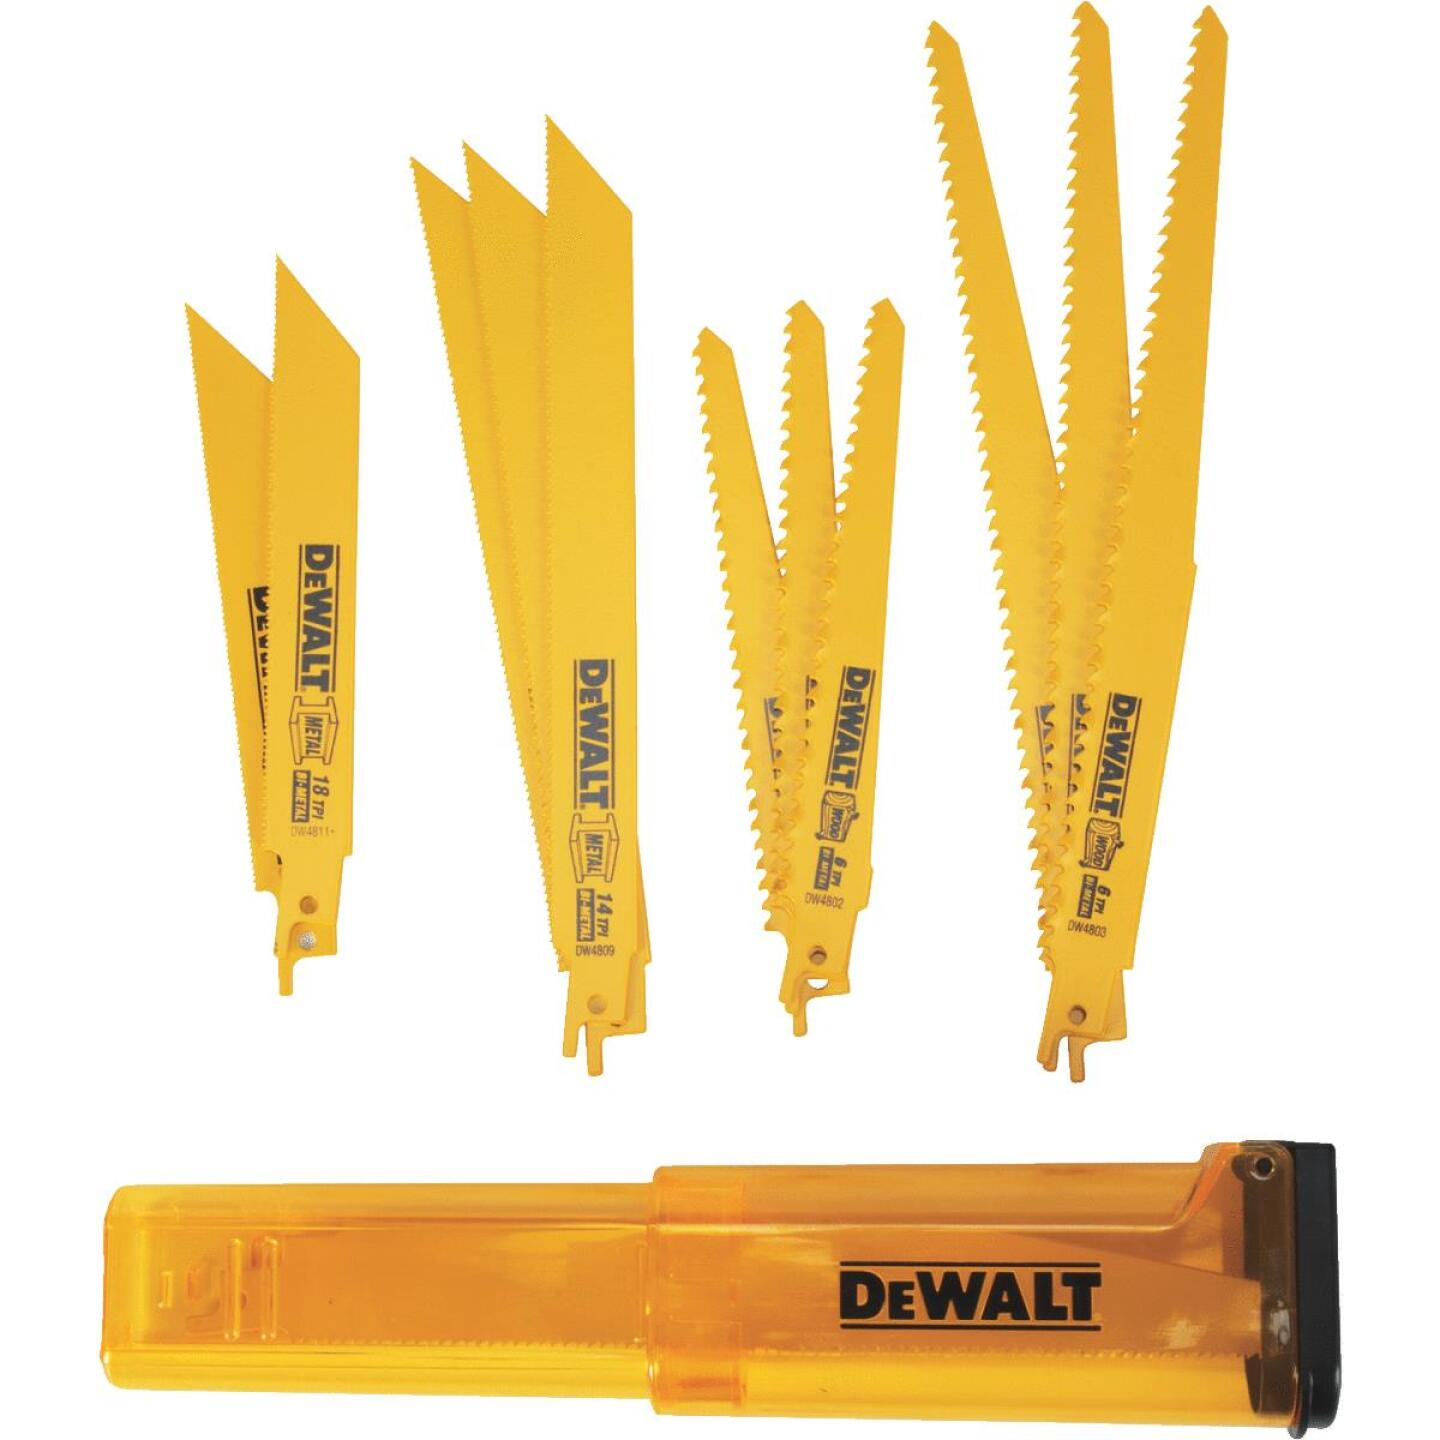 DeWalt 12-Piece Reciprocating Saw Blade Set Image 1